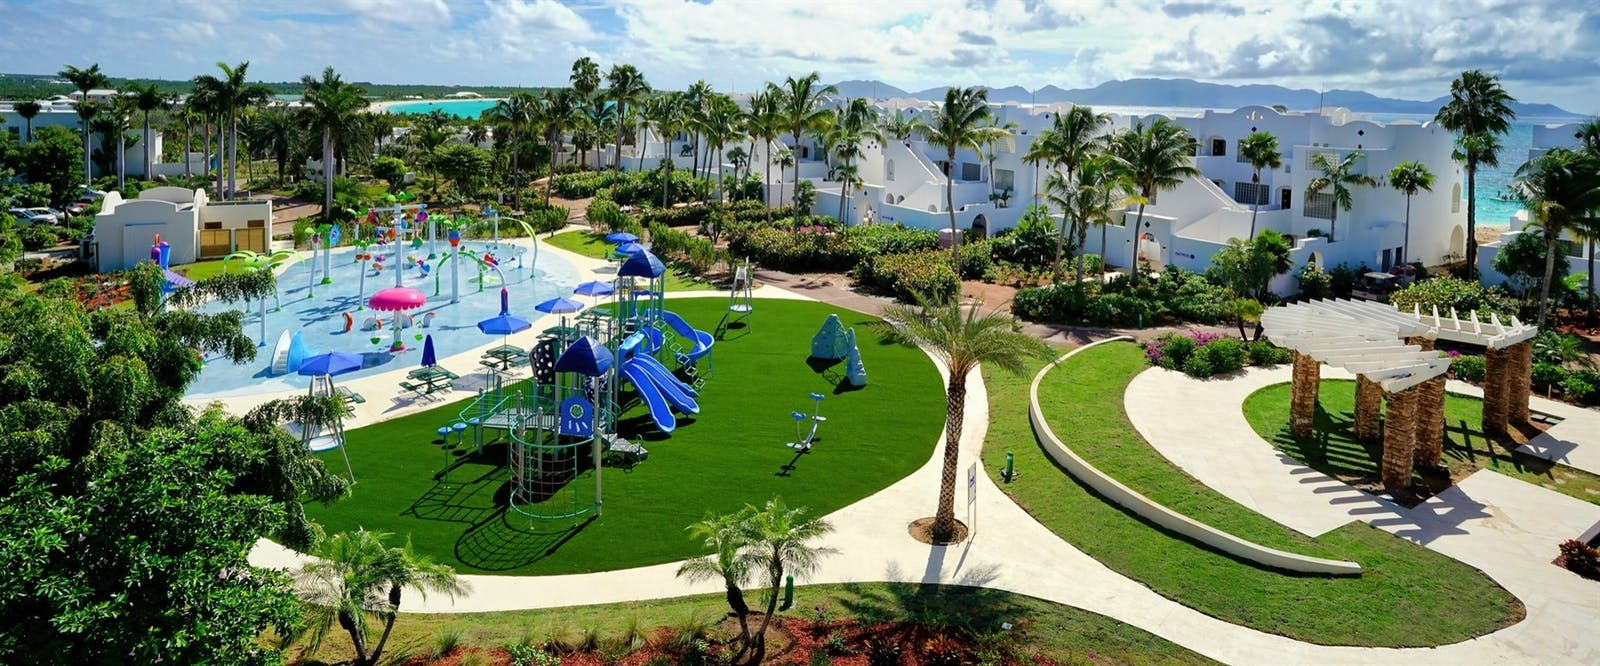 Splash Pad at CuisinArt Golf Resort & Spa, Anguilla